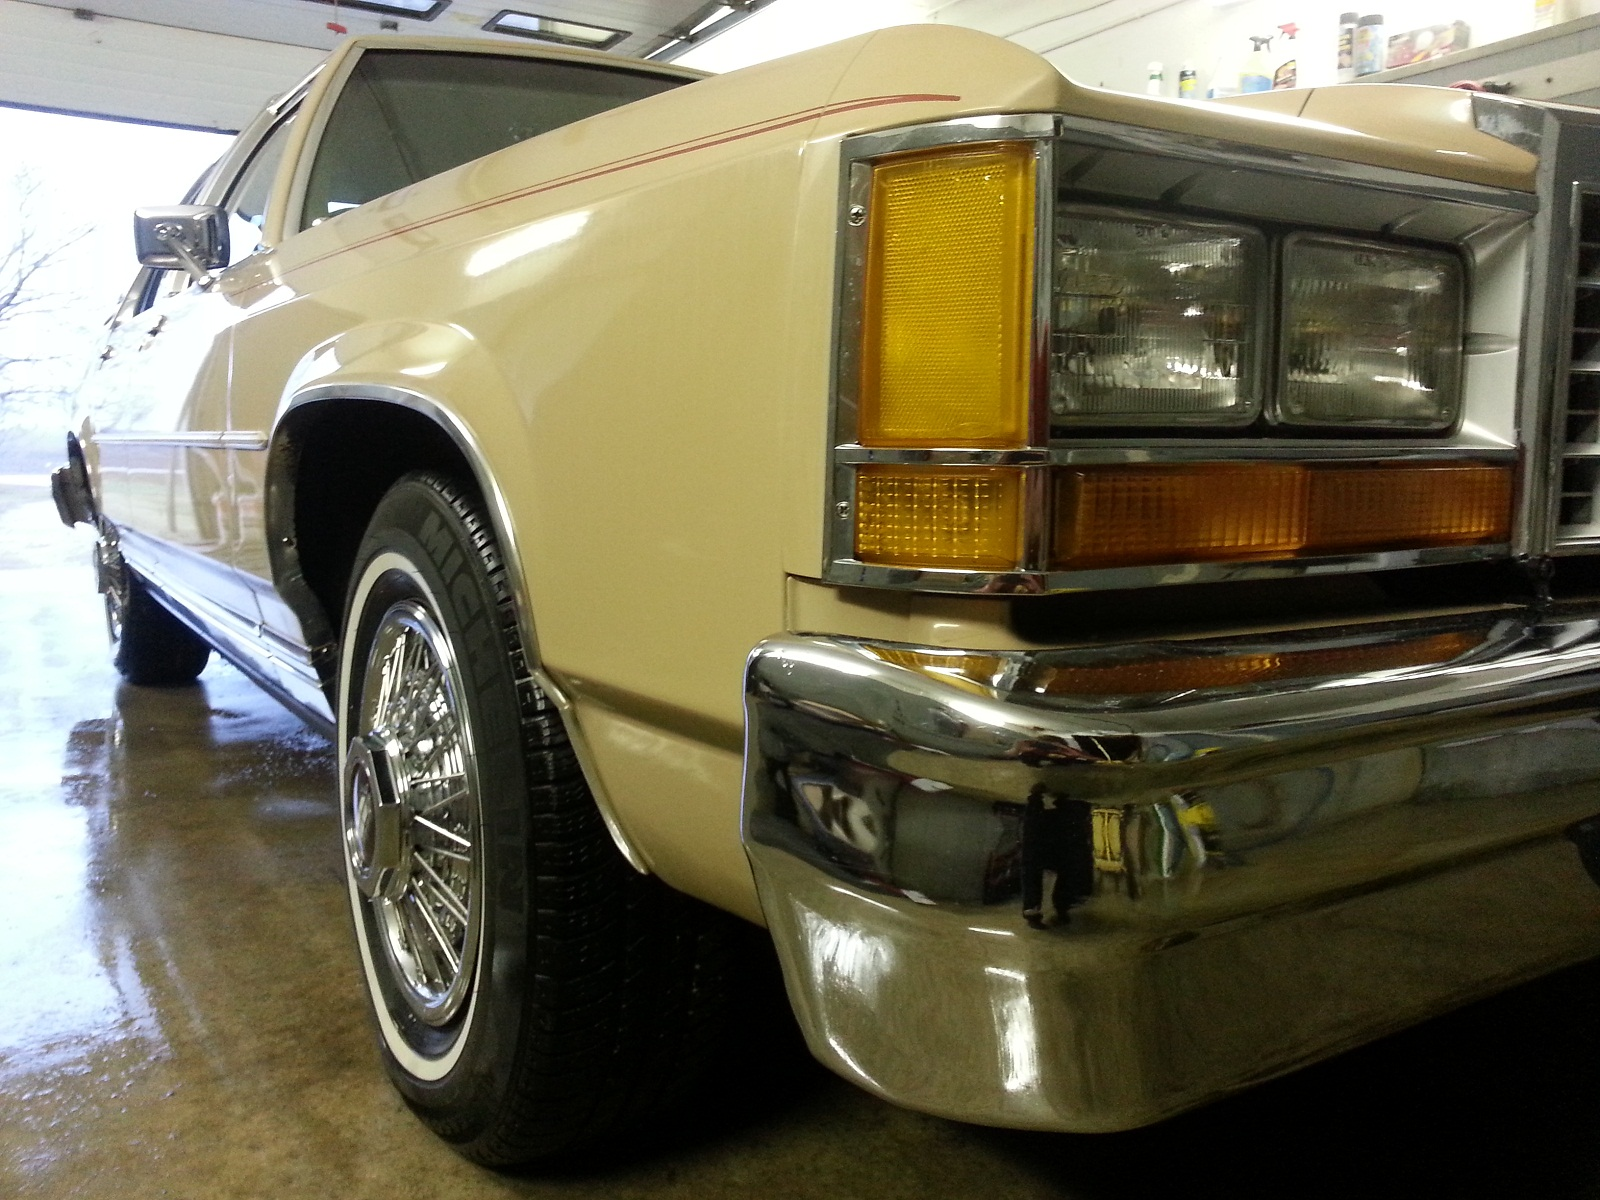 '87 LTD Crown Vic LX-20130113_163616small.jpg